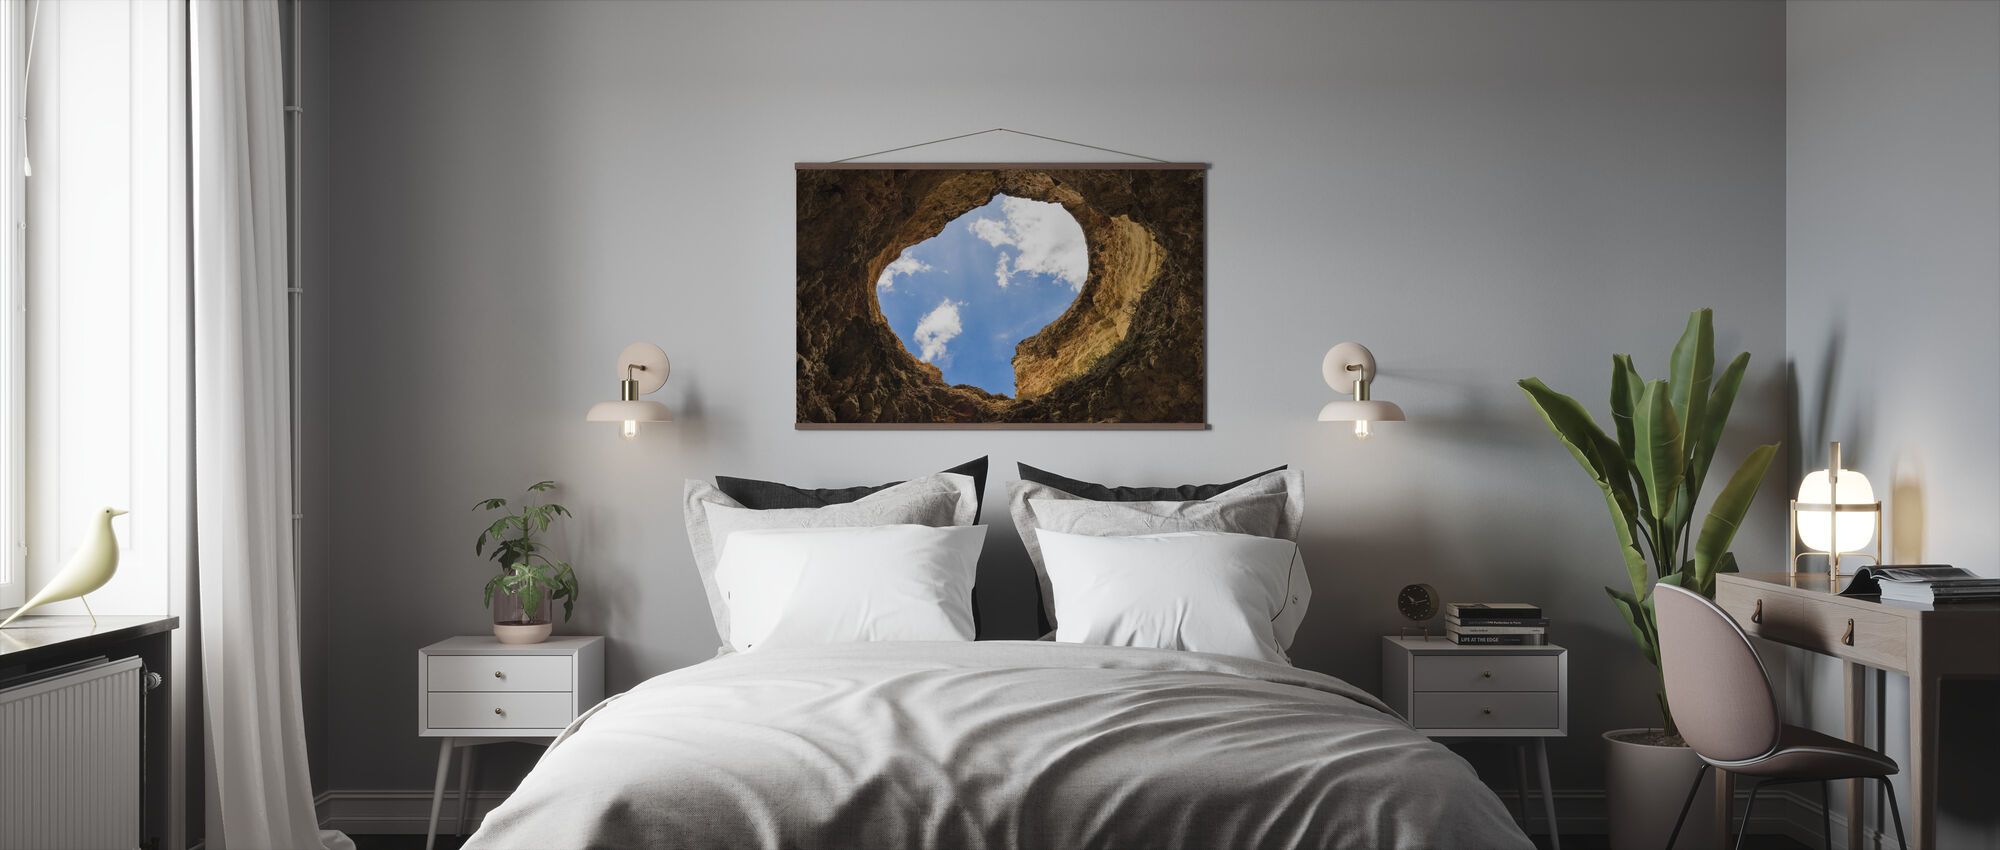 Cave Hole - Poster - Bedroom